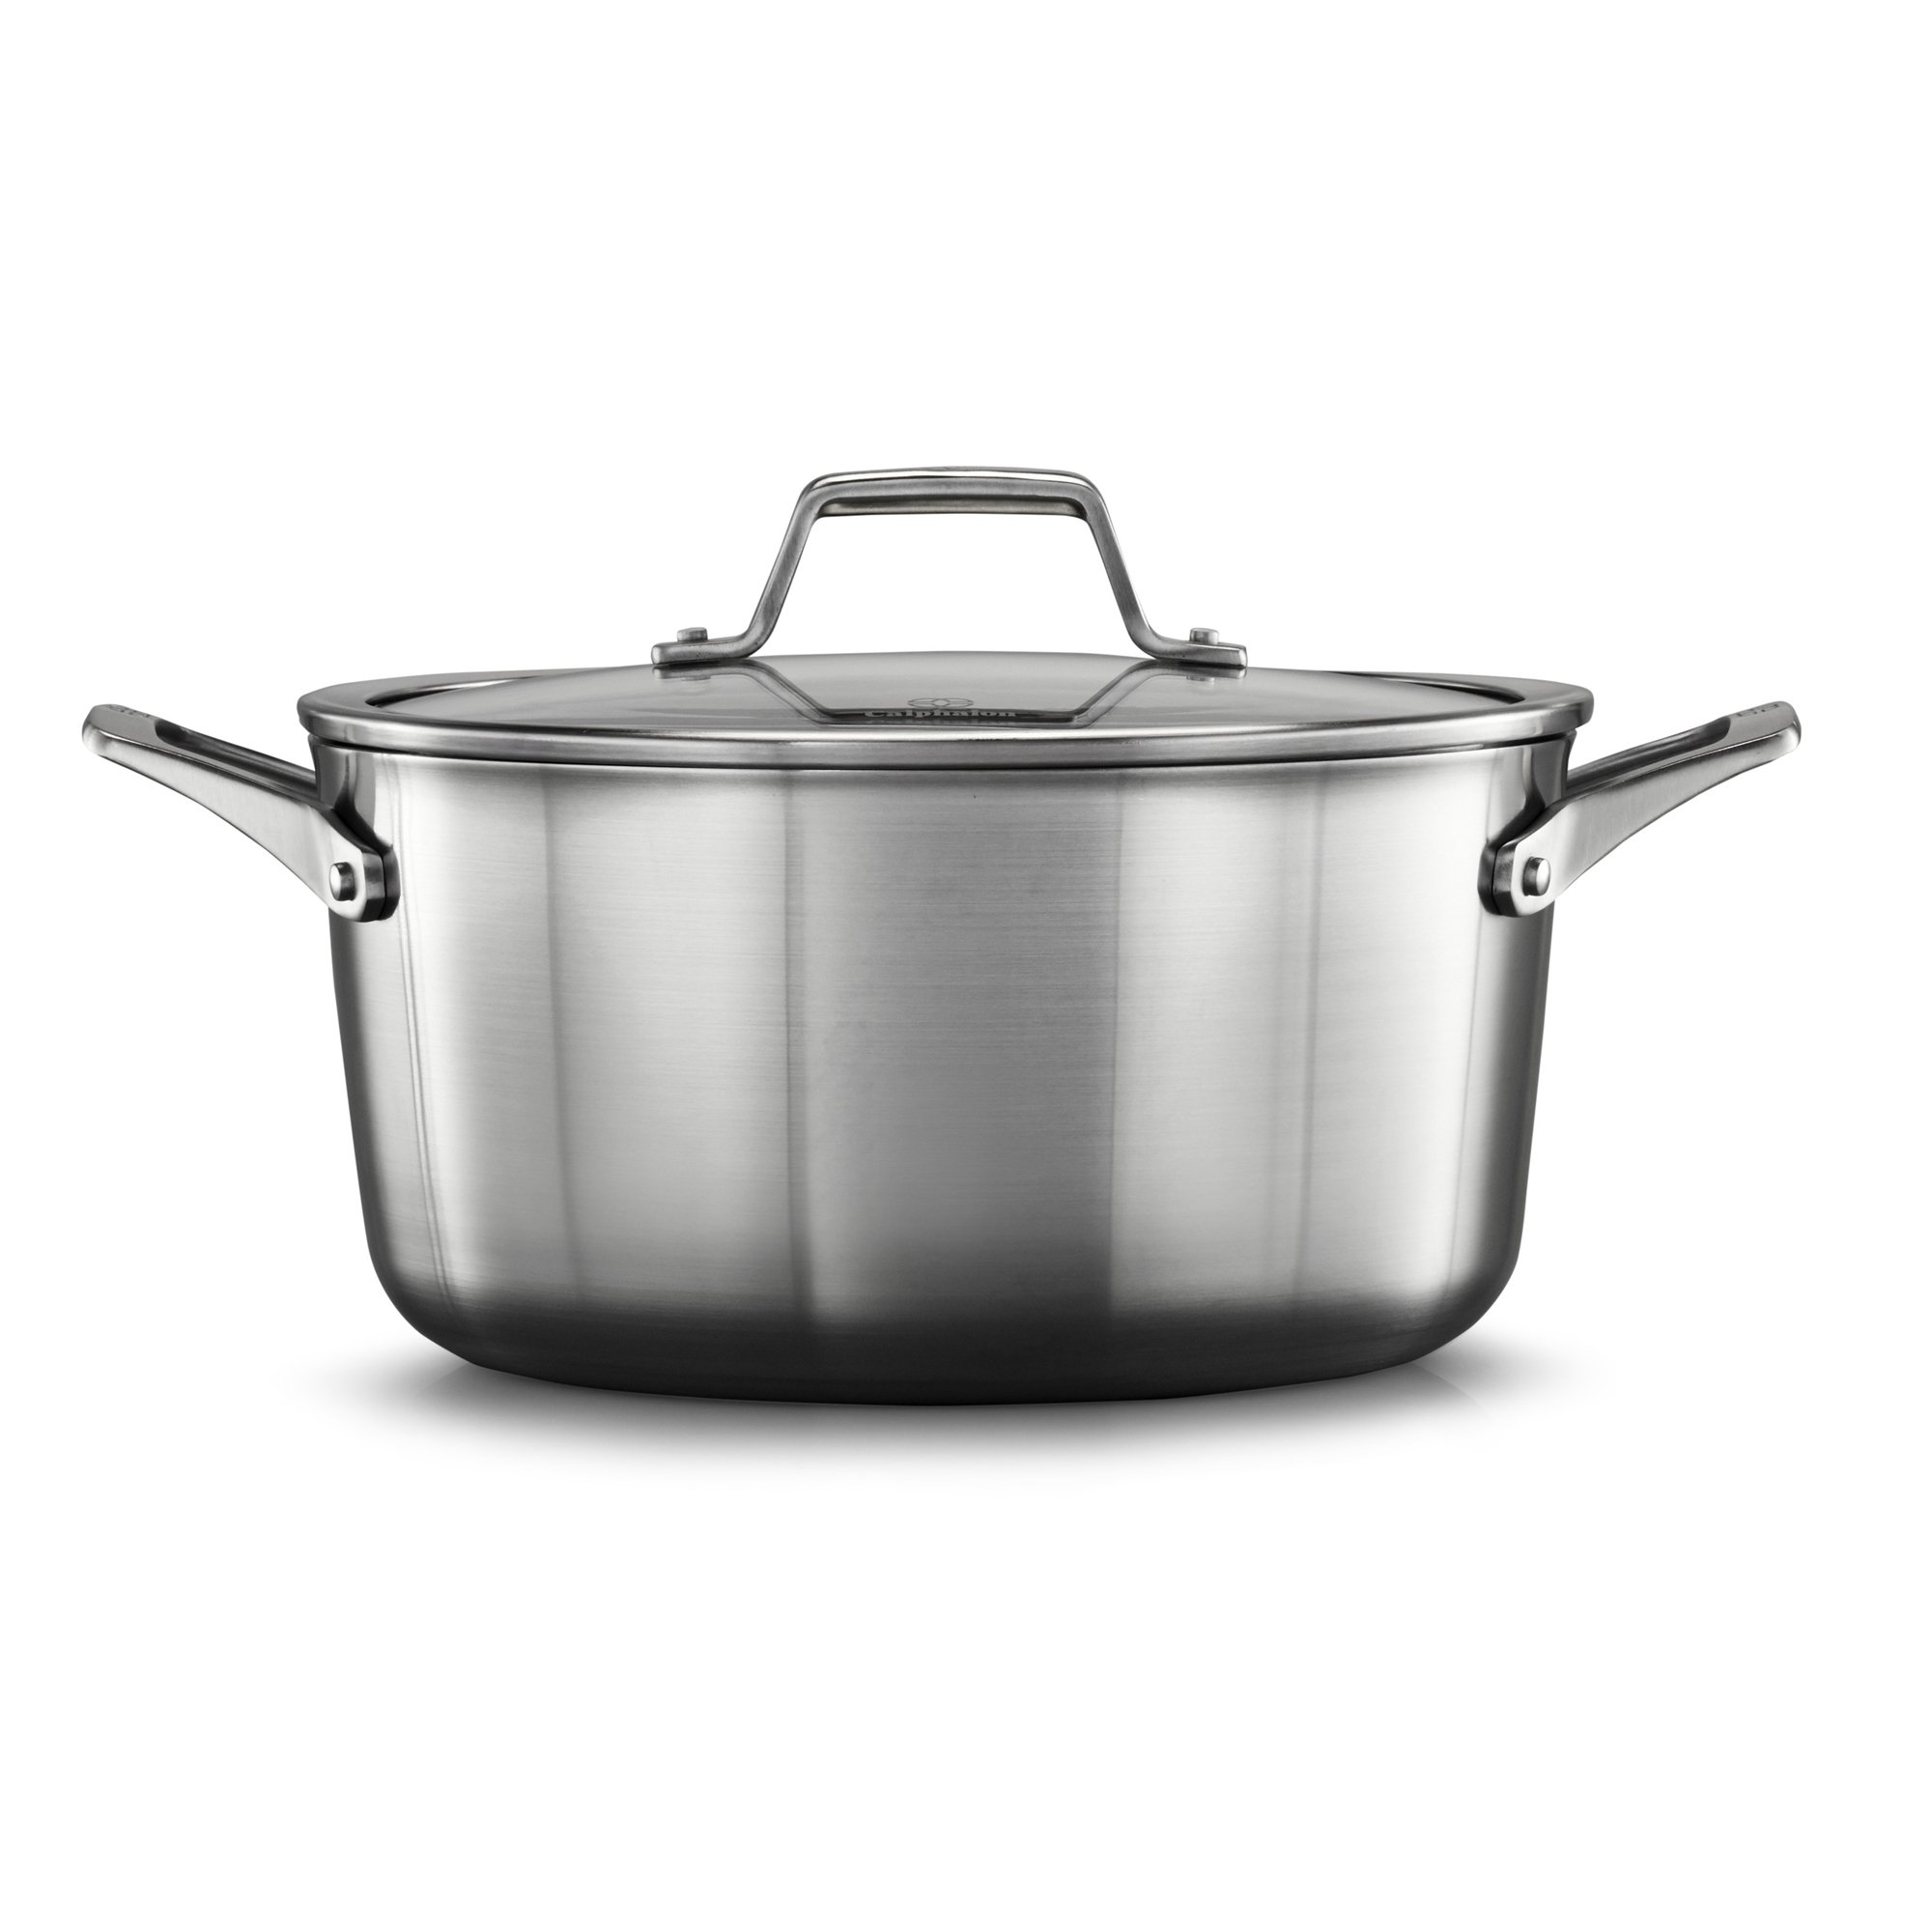 Calphalon Premier Stainless Steel 6-Quart Stock Pot with Cover